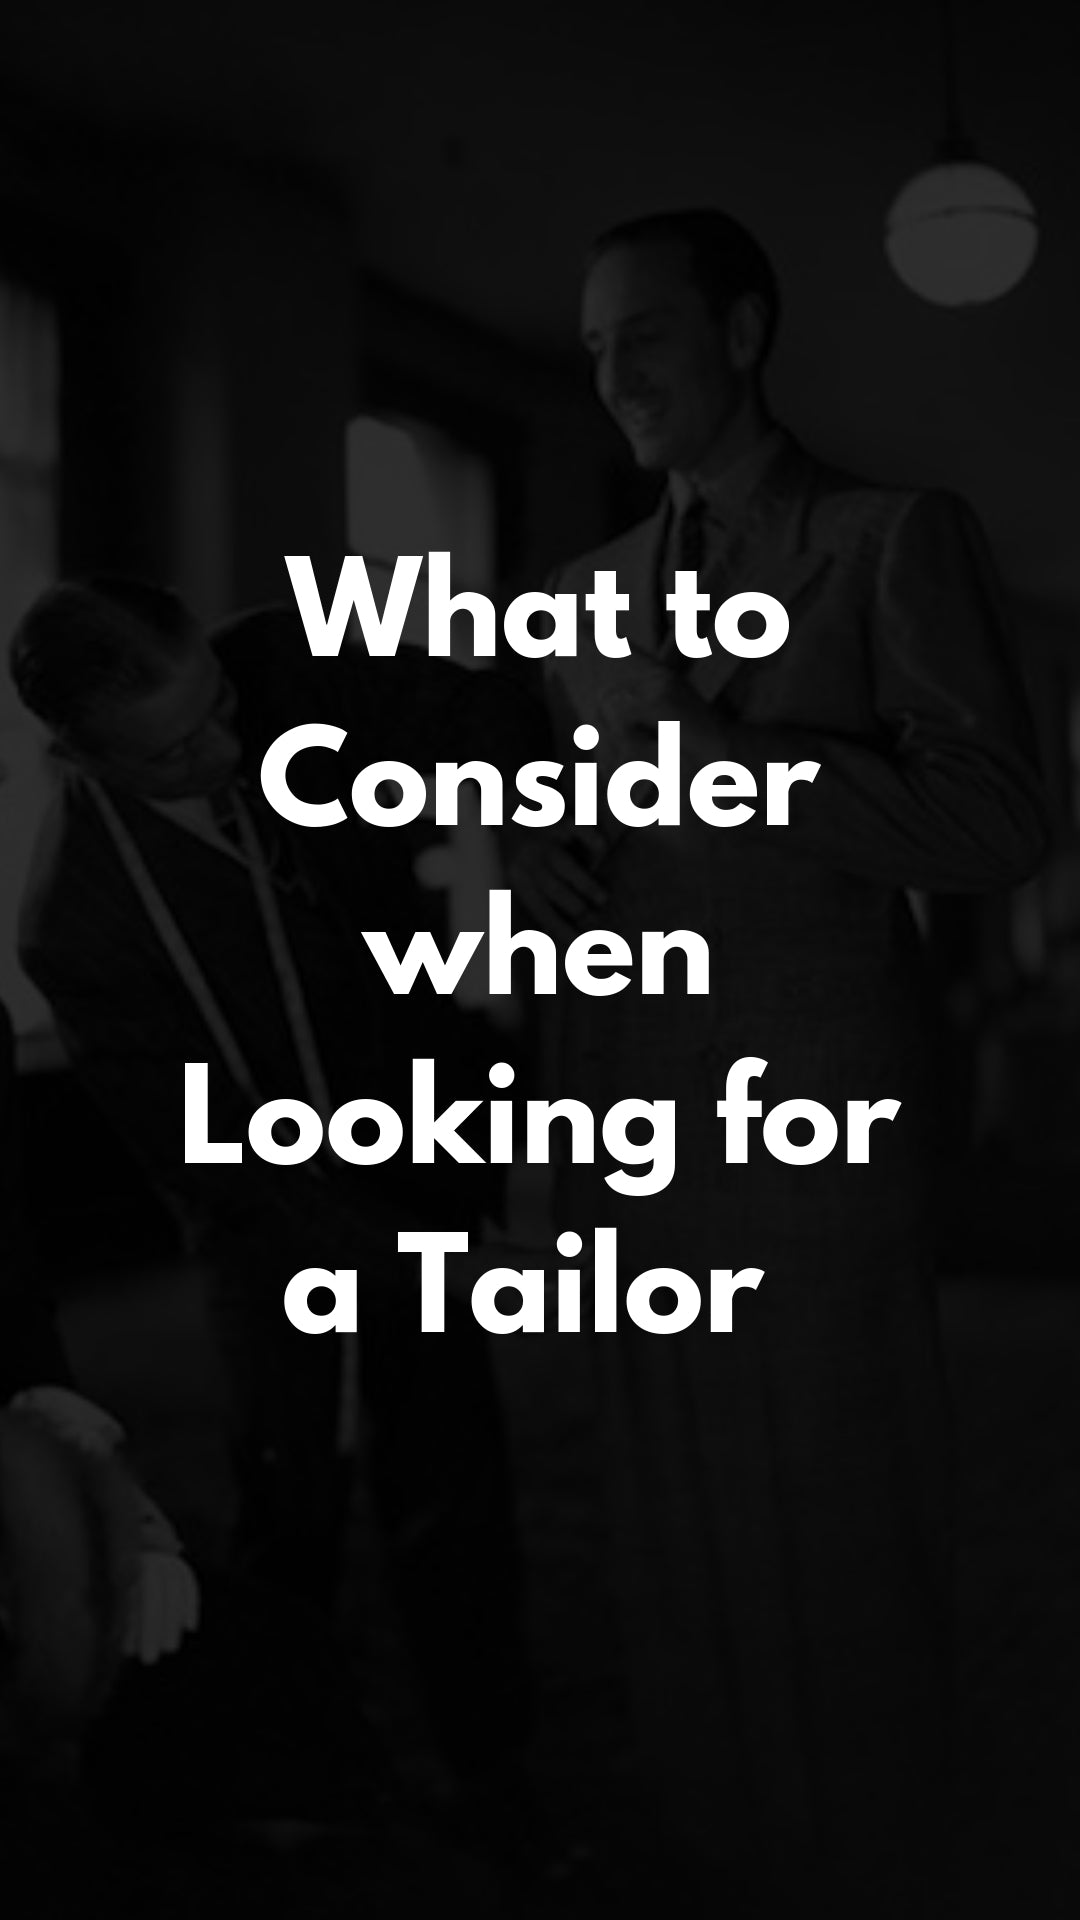 What to Consider when Looking for a Tailor